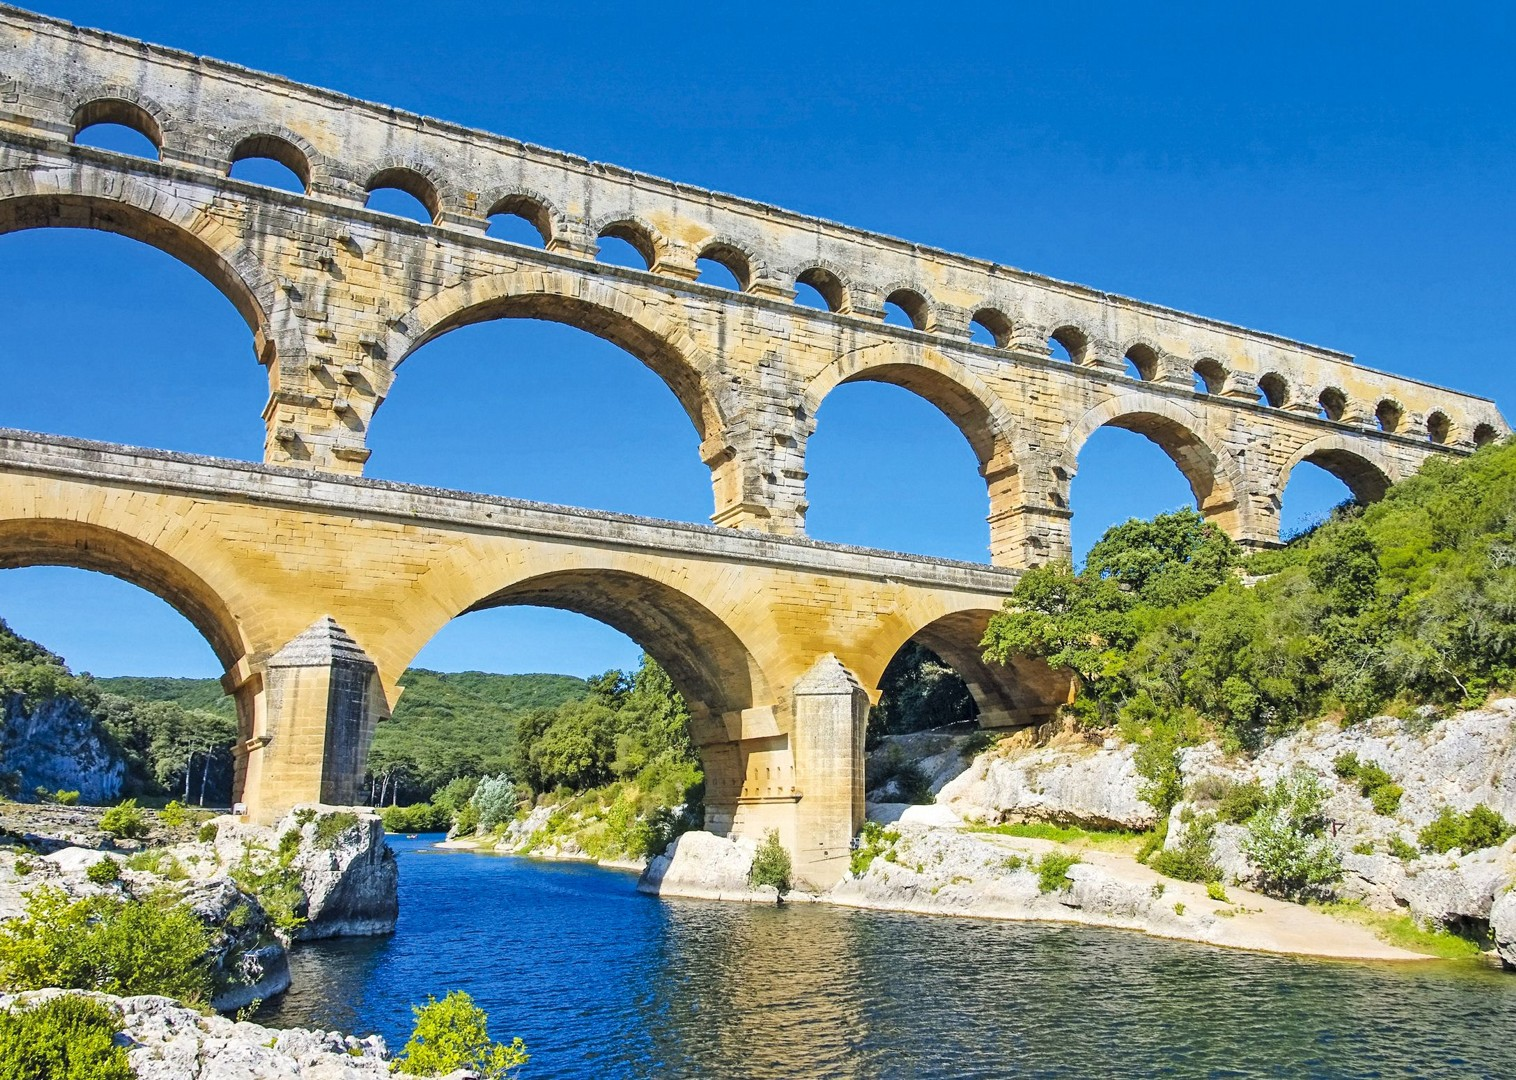 pont-du-gard-gardon-river-cycling-boat-cruise-holiday.jpg - France - Provence - Avignon to Aigues-Mortes - Bike and Barge Holiday - Leisure Cycling